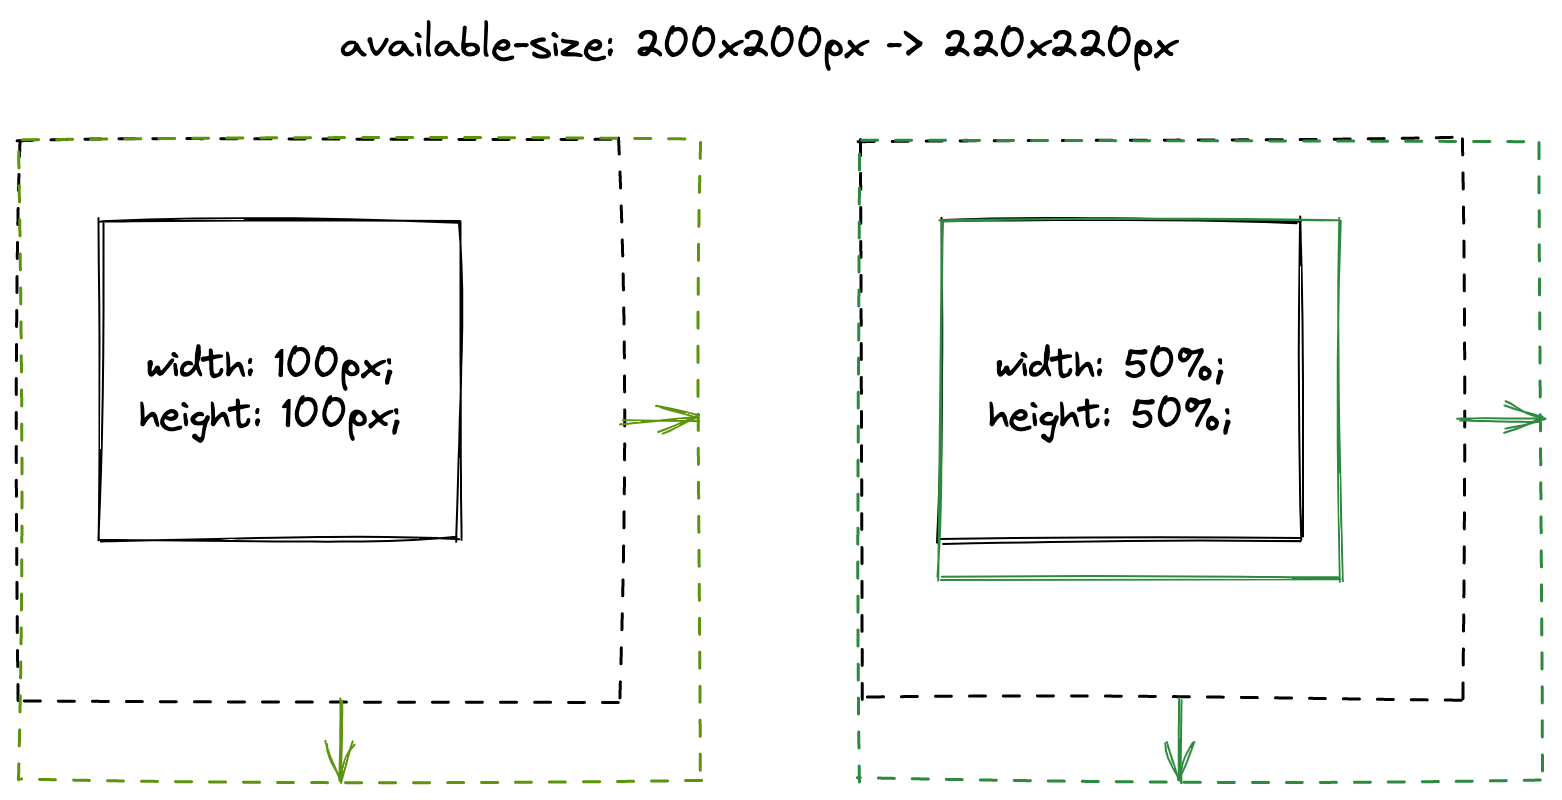 Comparing a fixed width and percentage width image.